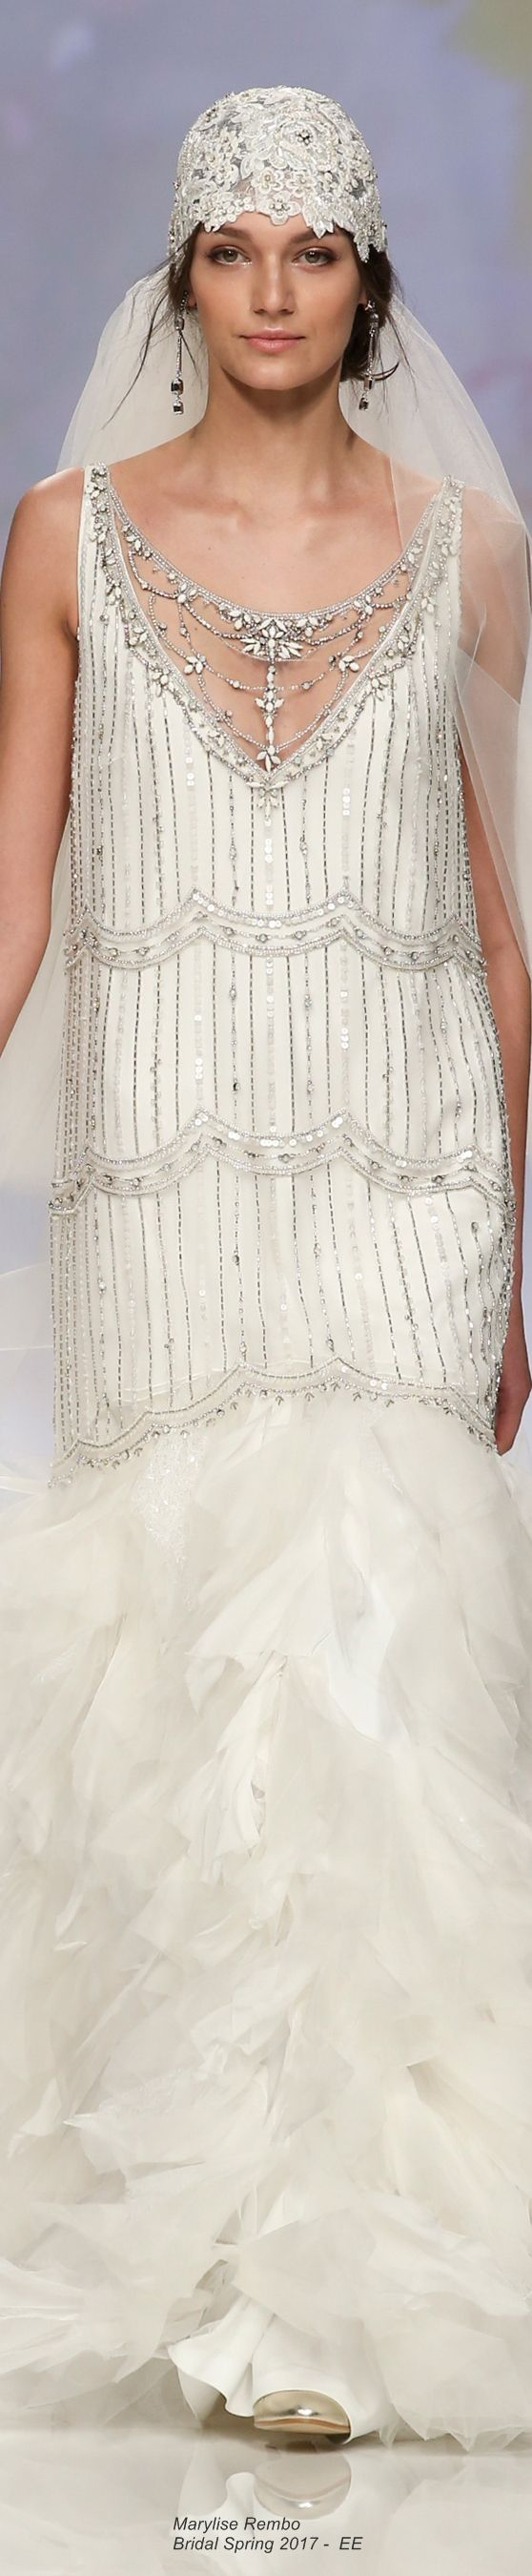 Marylise Rembo  Bridal Spring 2017 - EE